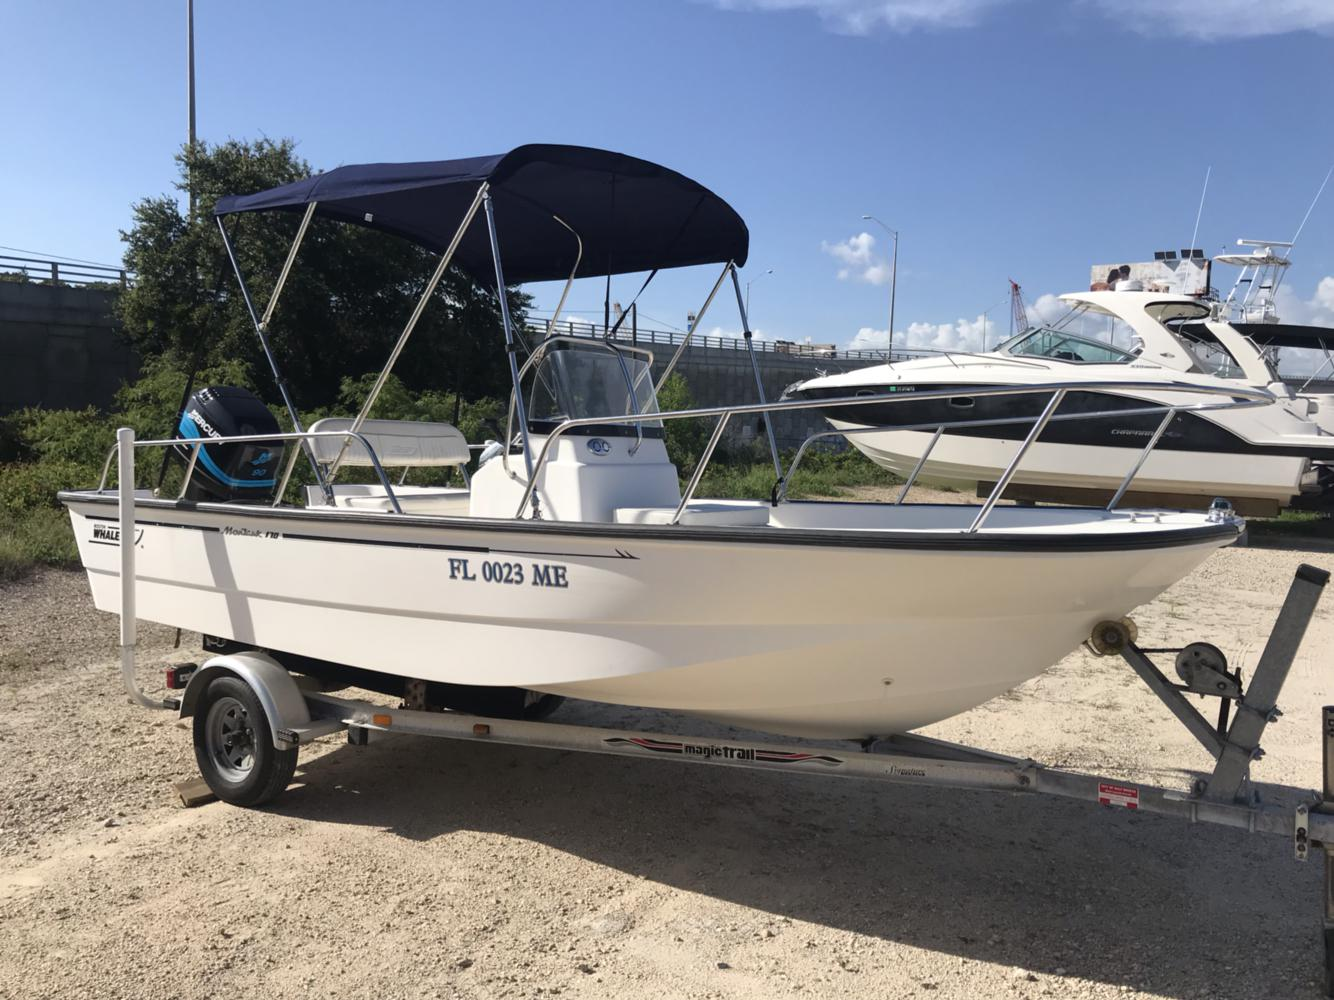 Inventory from Boston Whaler Harbor View Marine